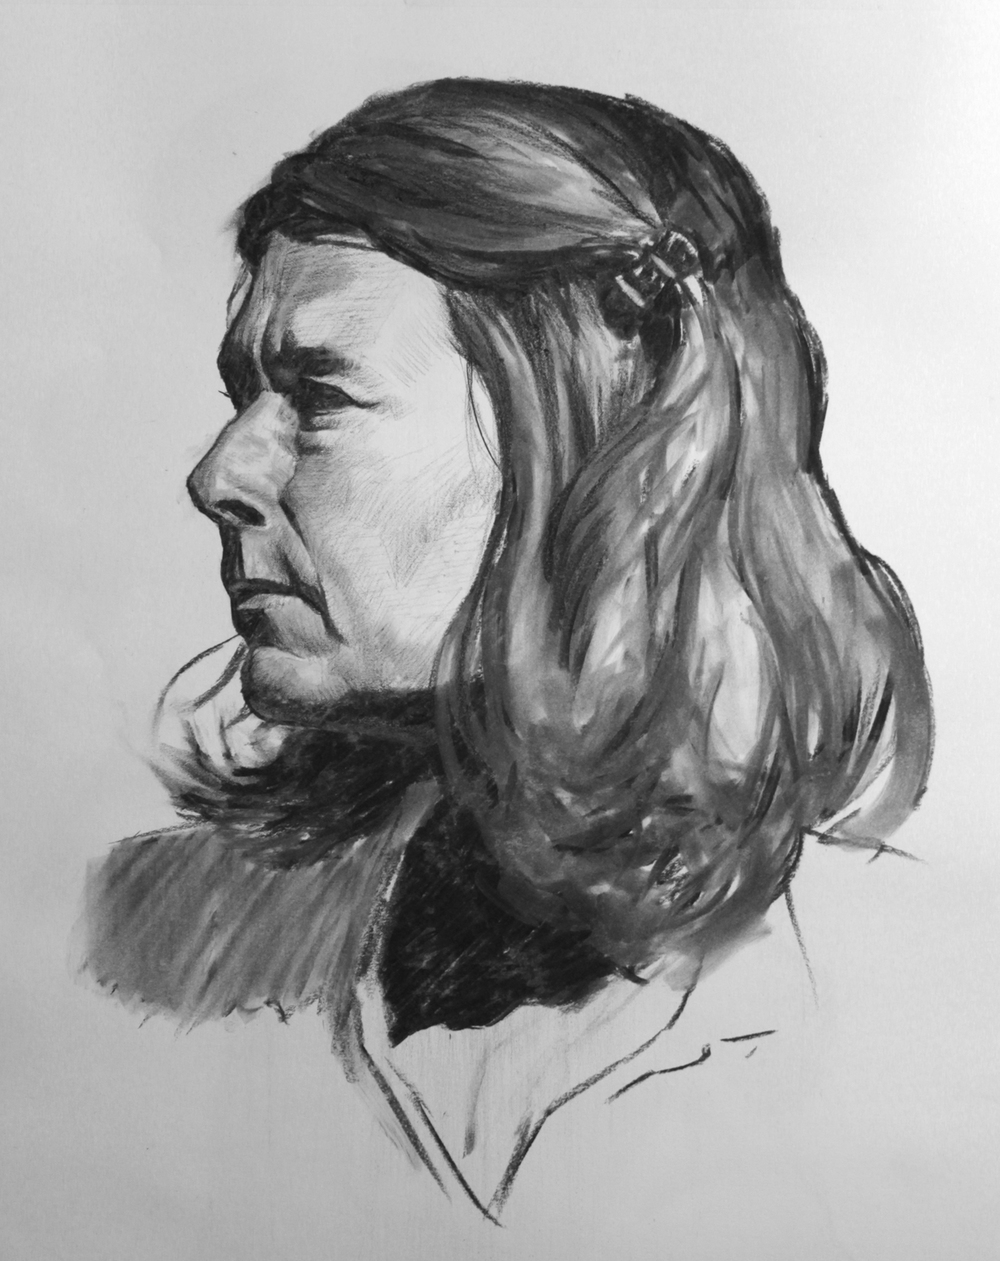 portrait_sketch_111711.jpg